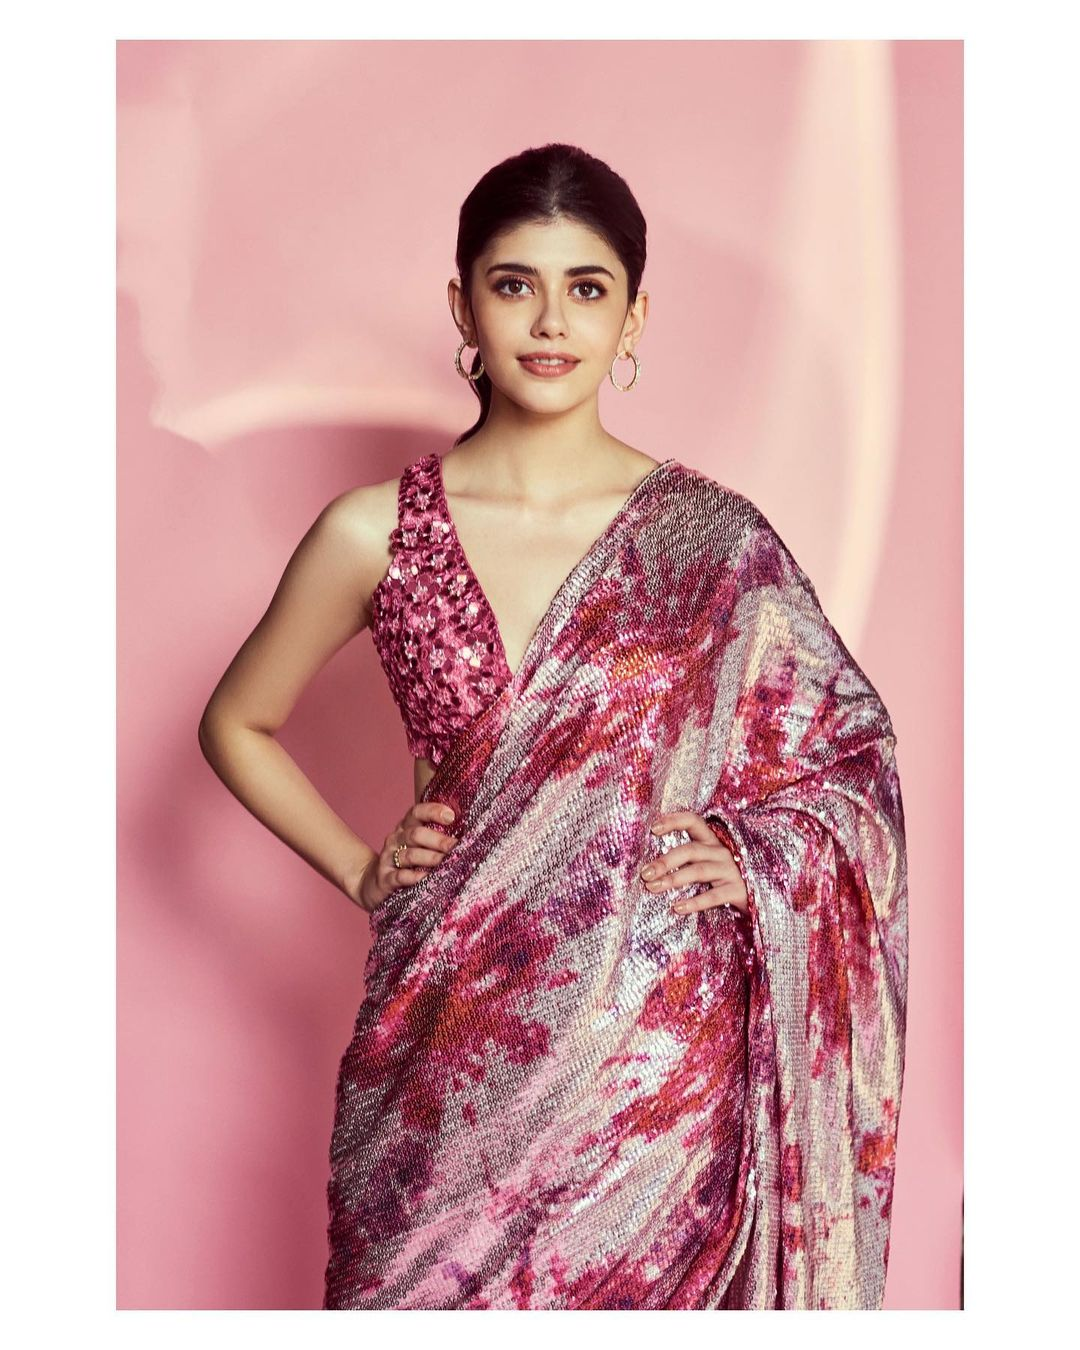 Sanjana Sanghi in sari become popular overnight